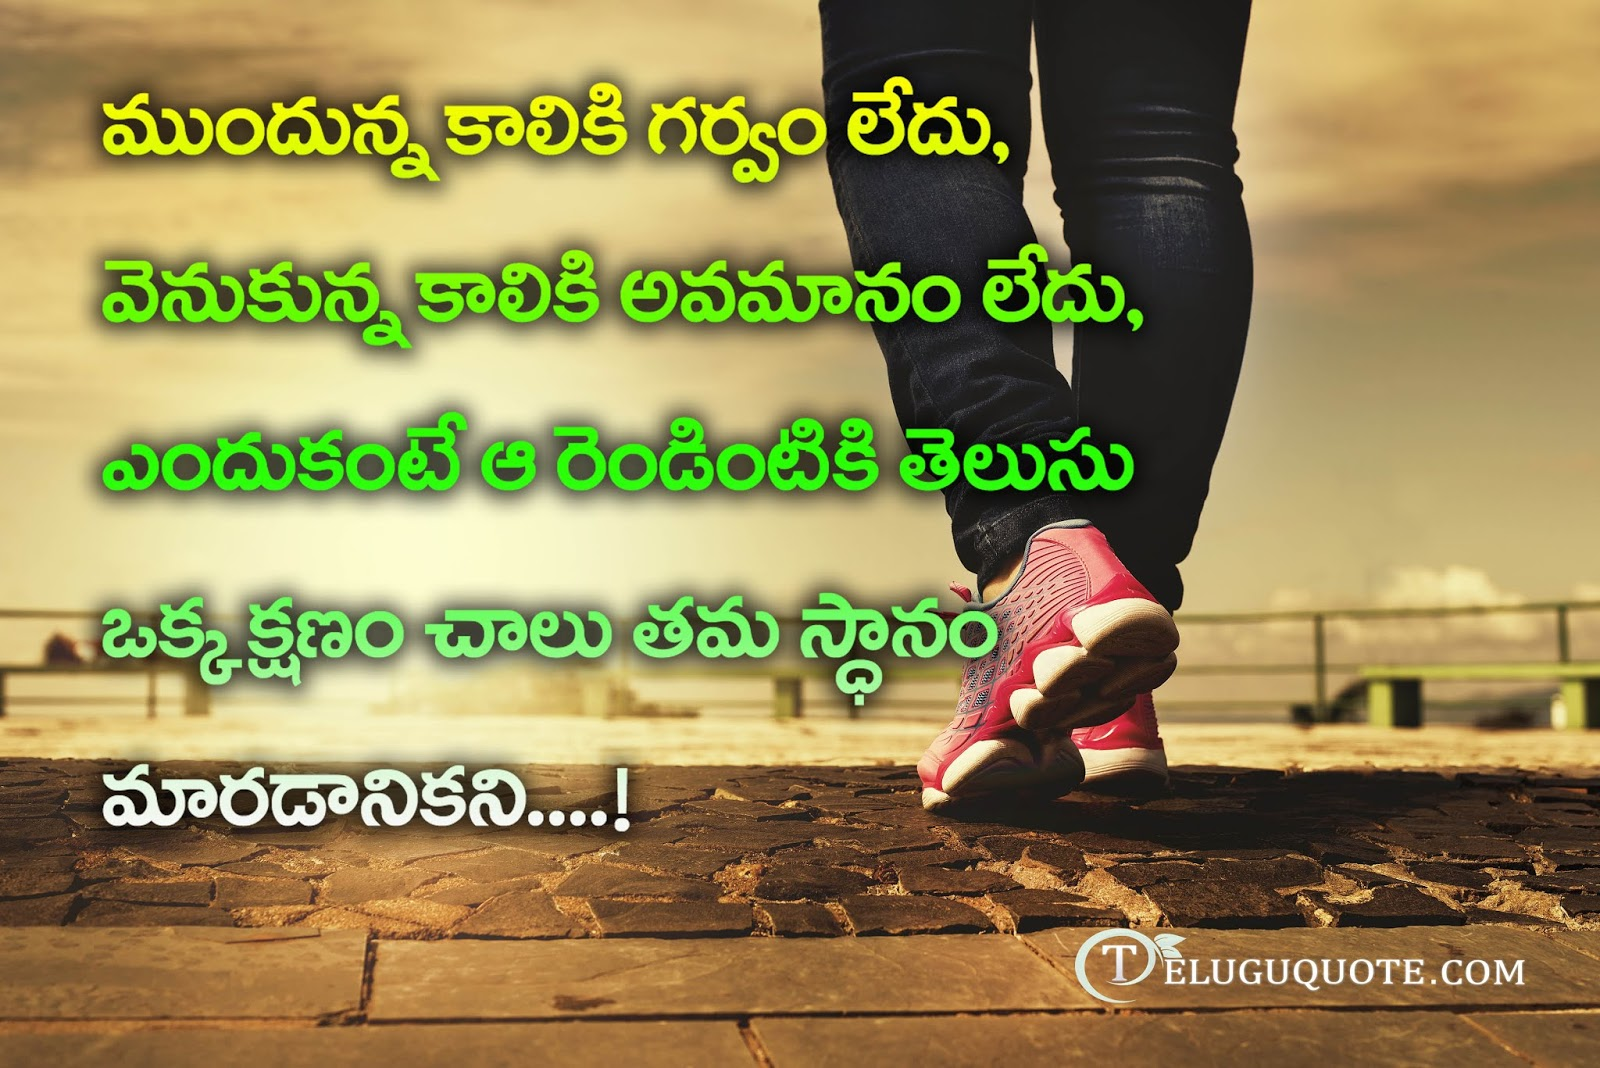 Telugu Inspirational Quotes Images Telugu Quotes